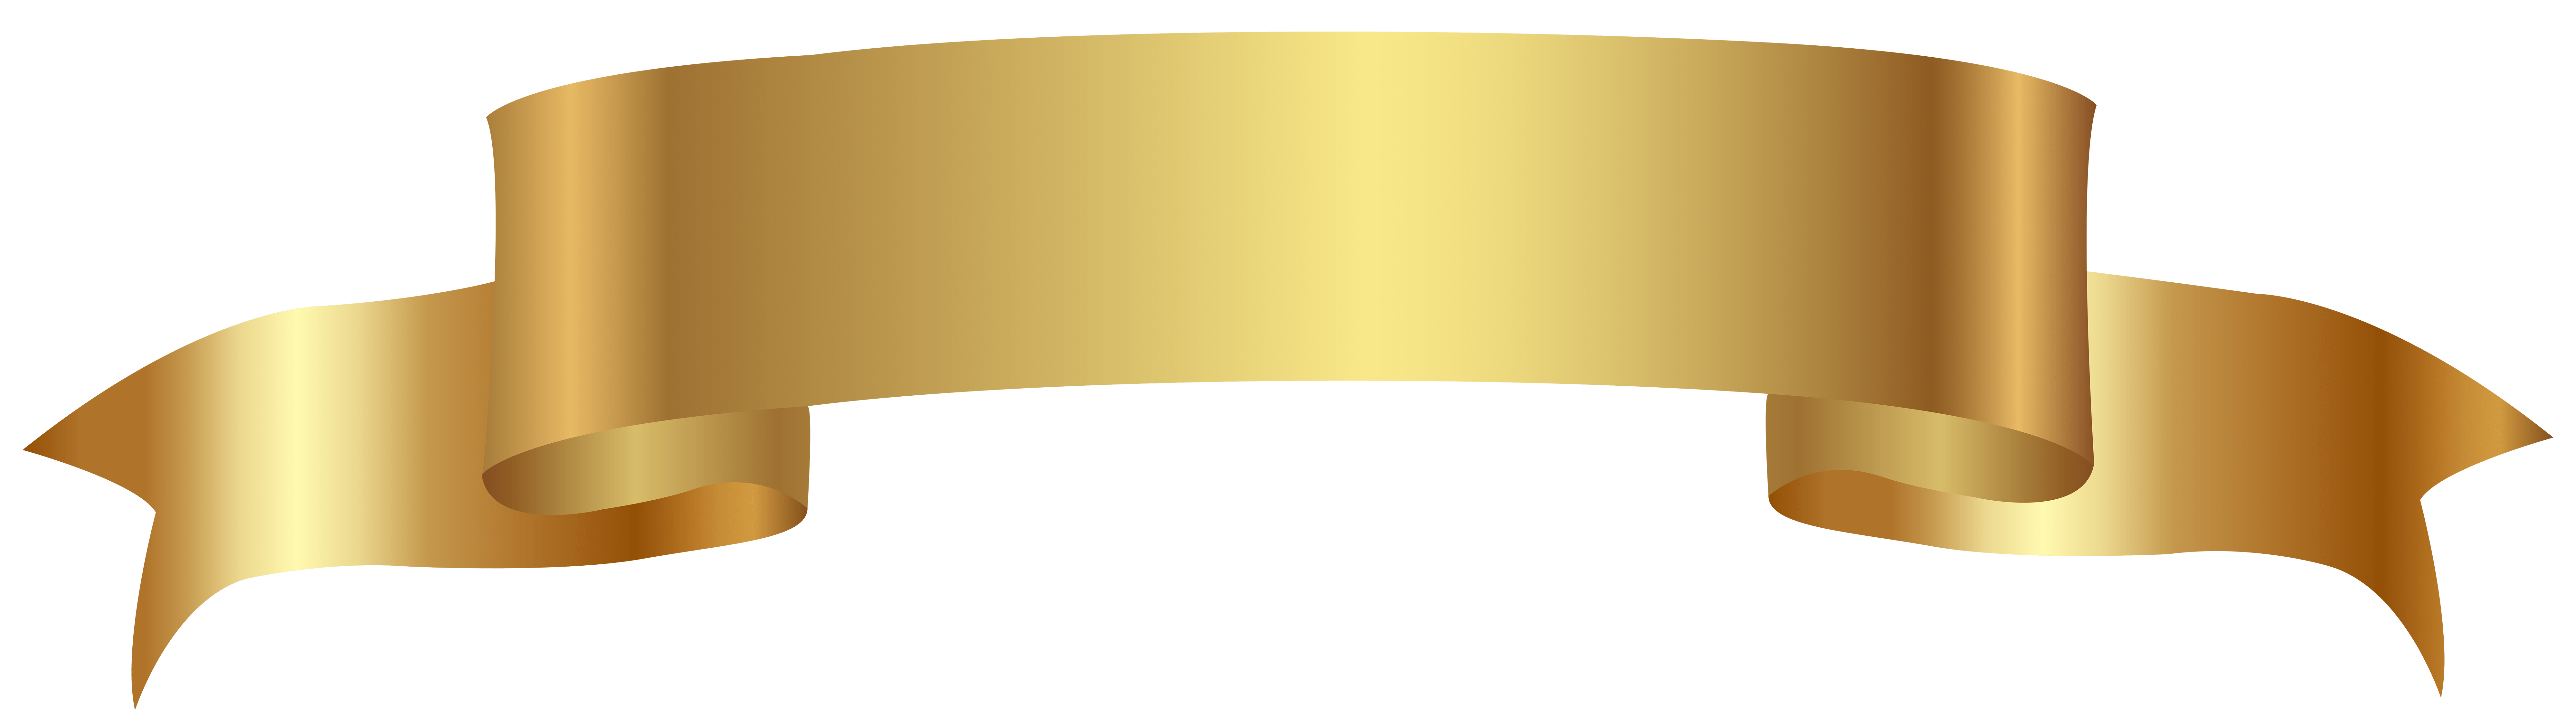 Gold banner transparent png image gallery yopriceville